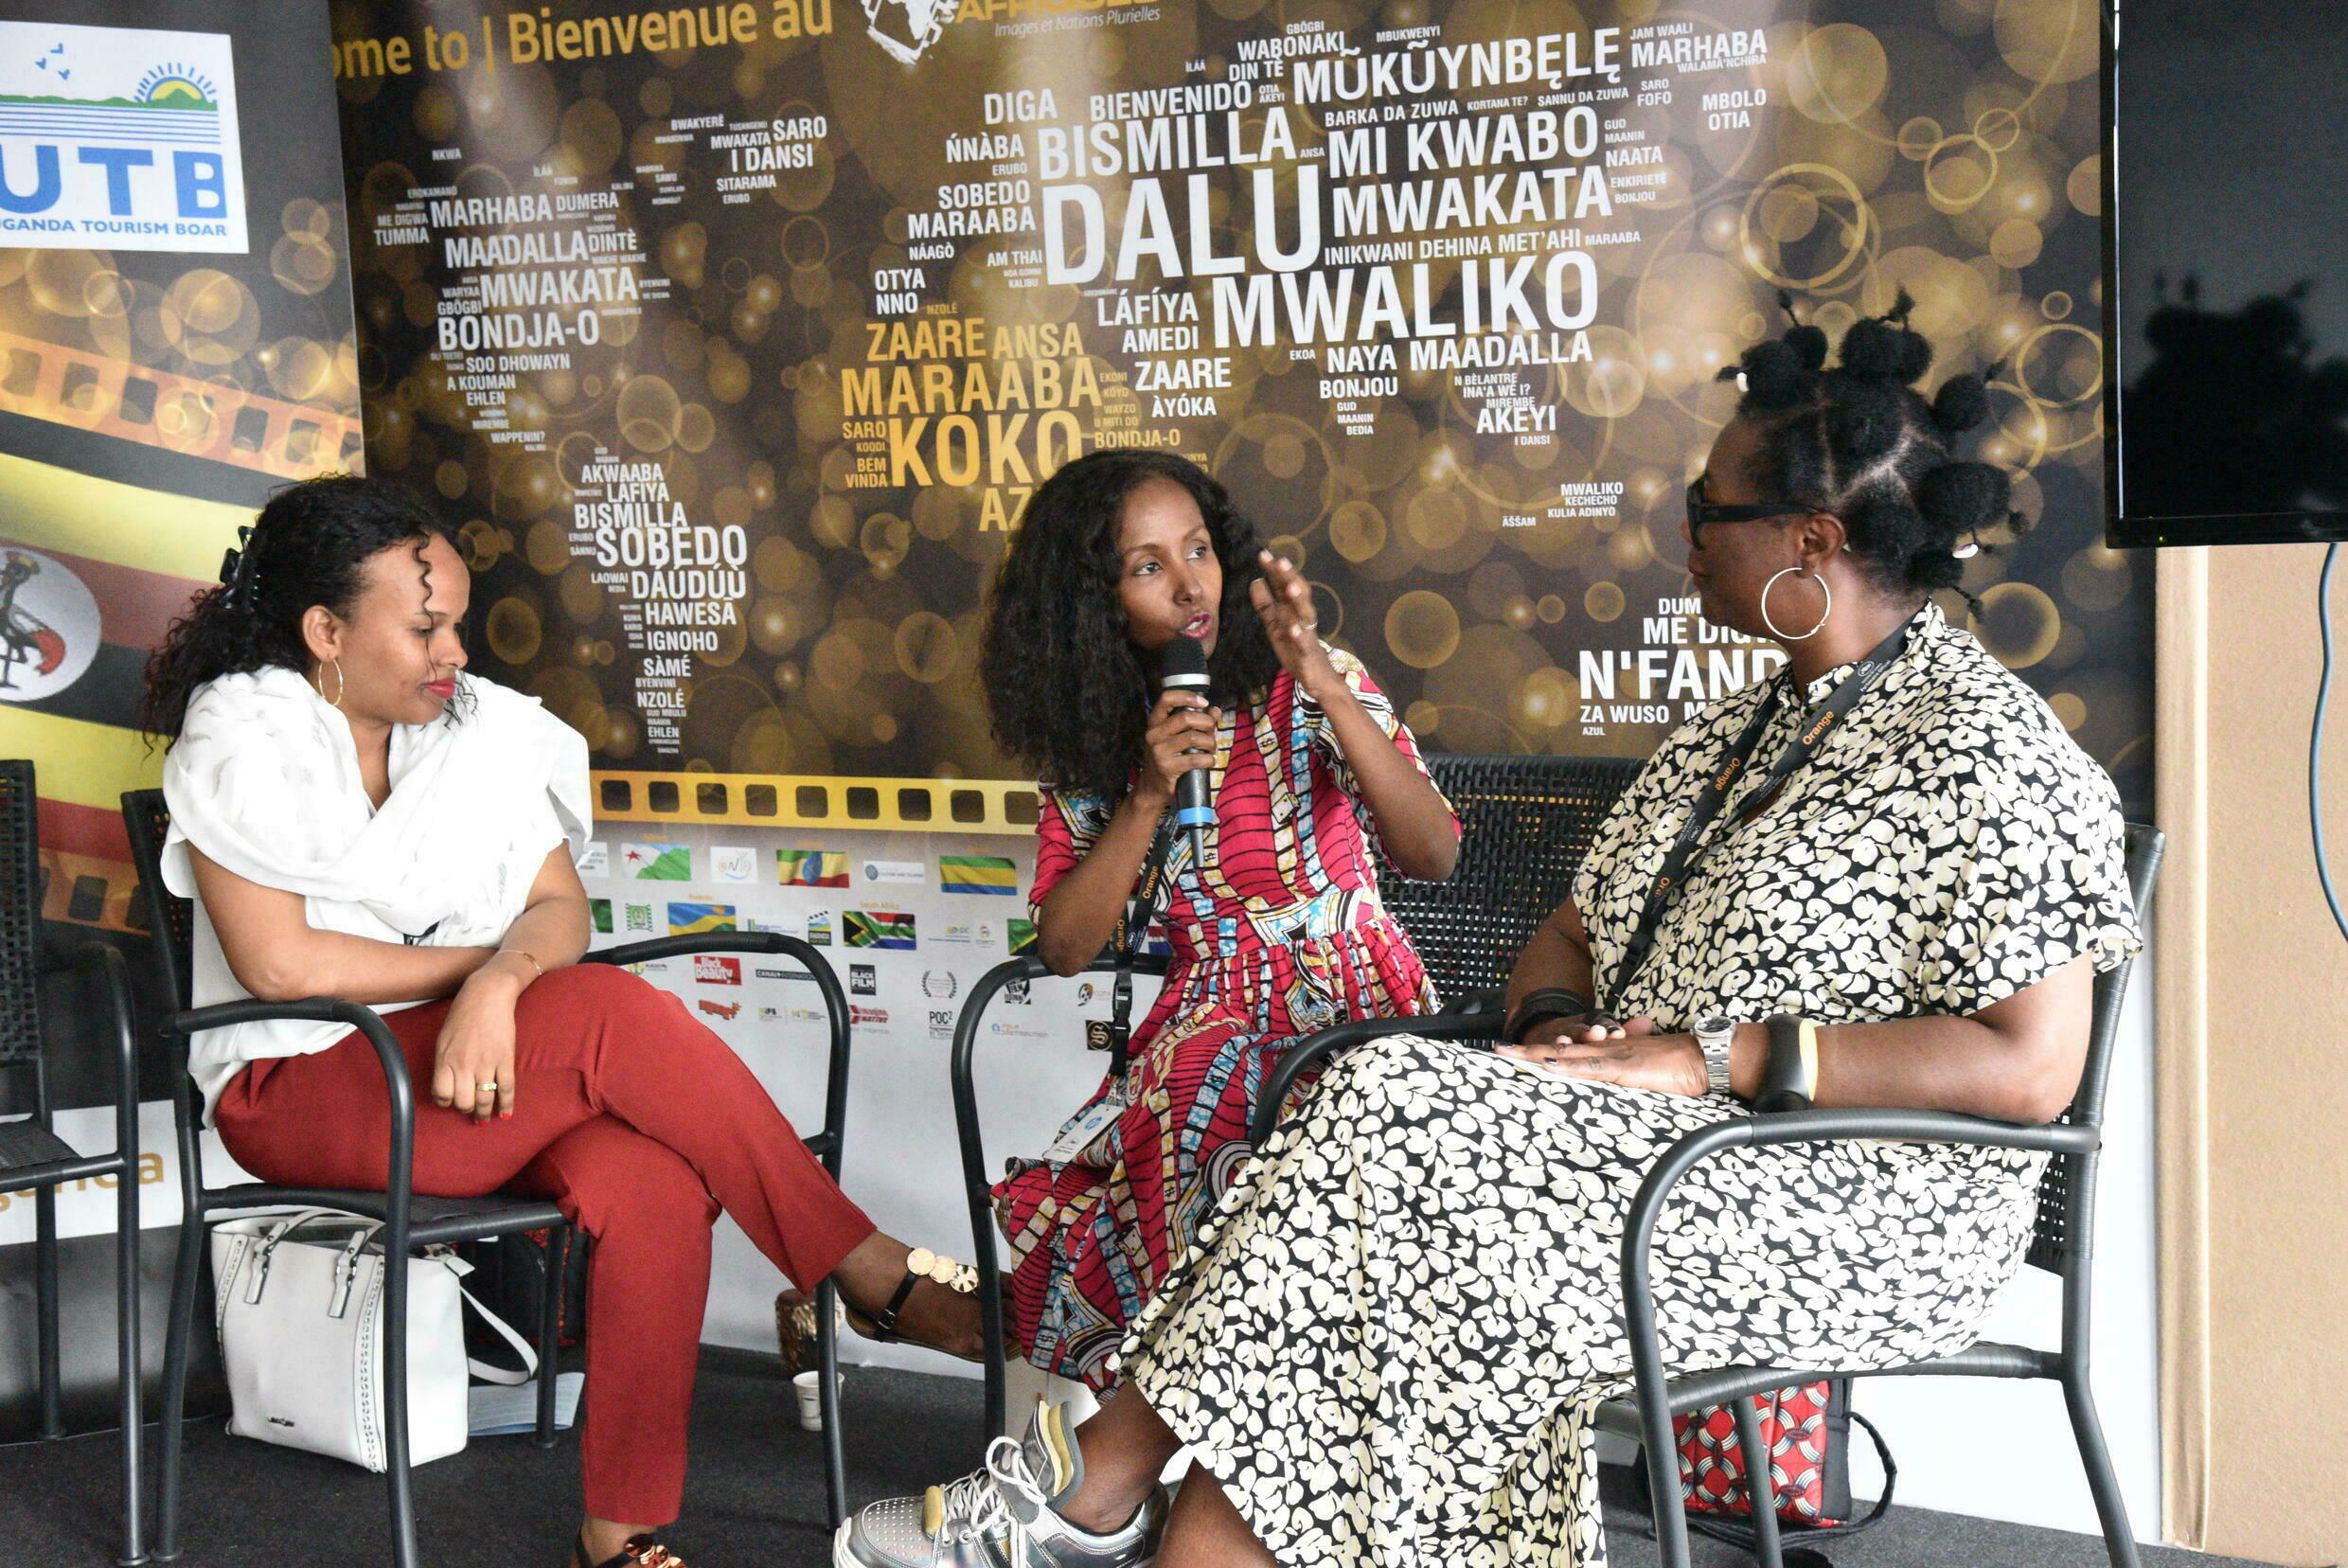 Lula Ali Ismaël (centre), ambassador for Djibouti cinema speaking at a panel at the Pavillon Afriques stand, Cannes Film Festival, Marché du Film, May 2019.